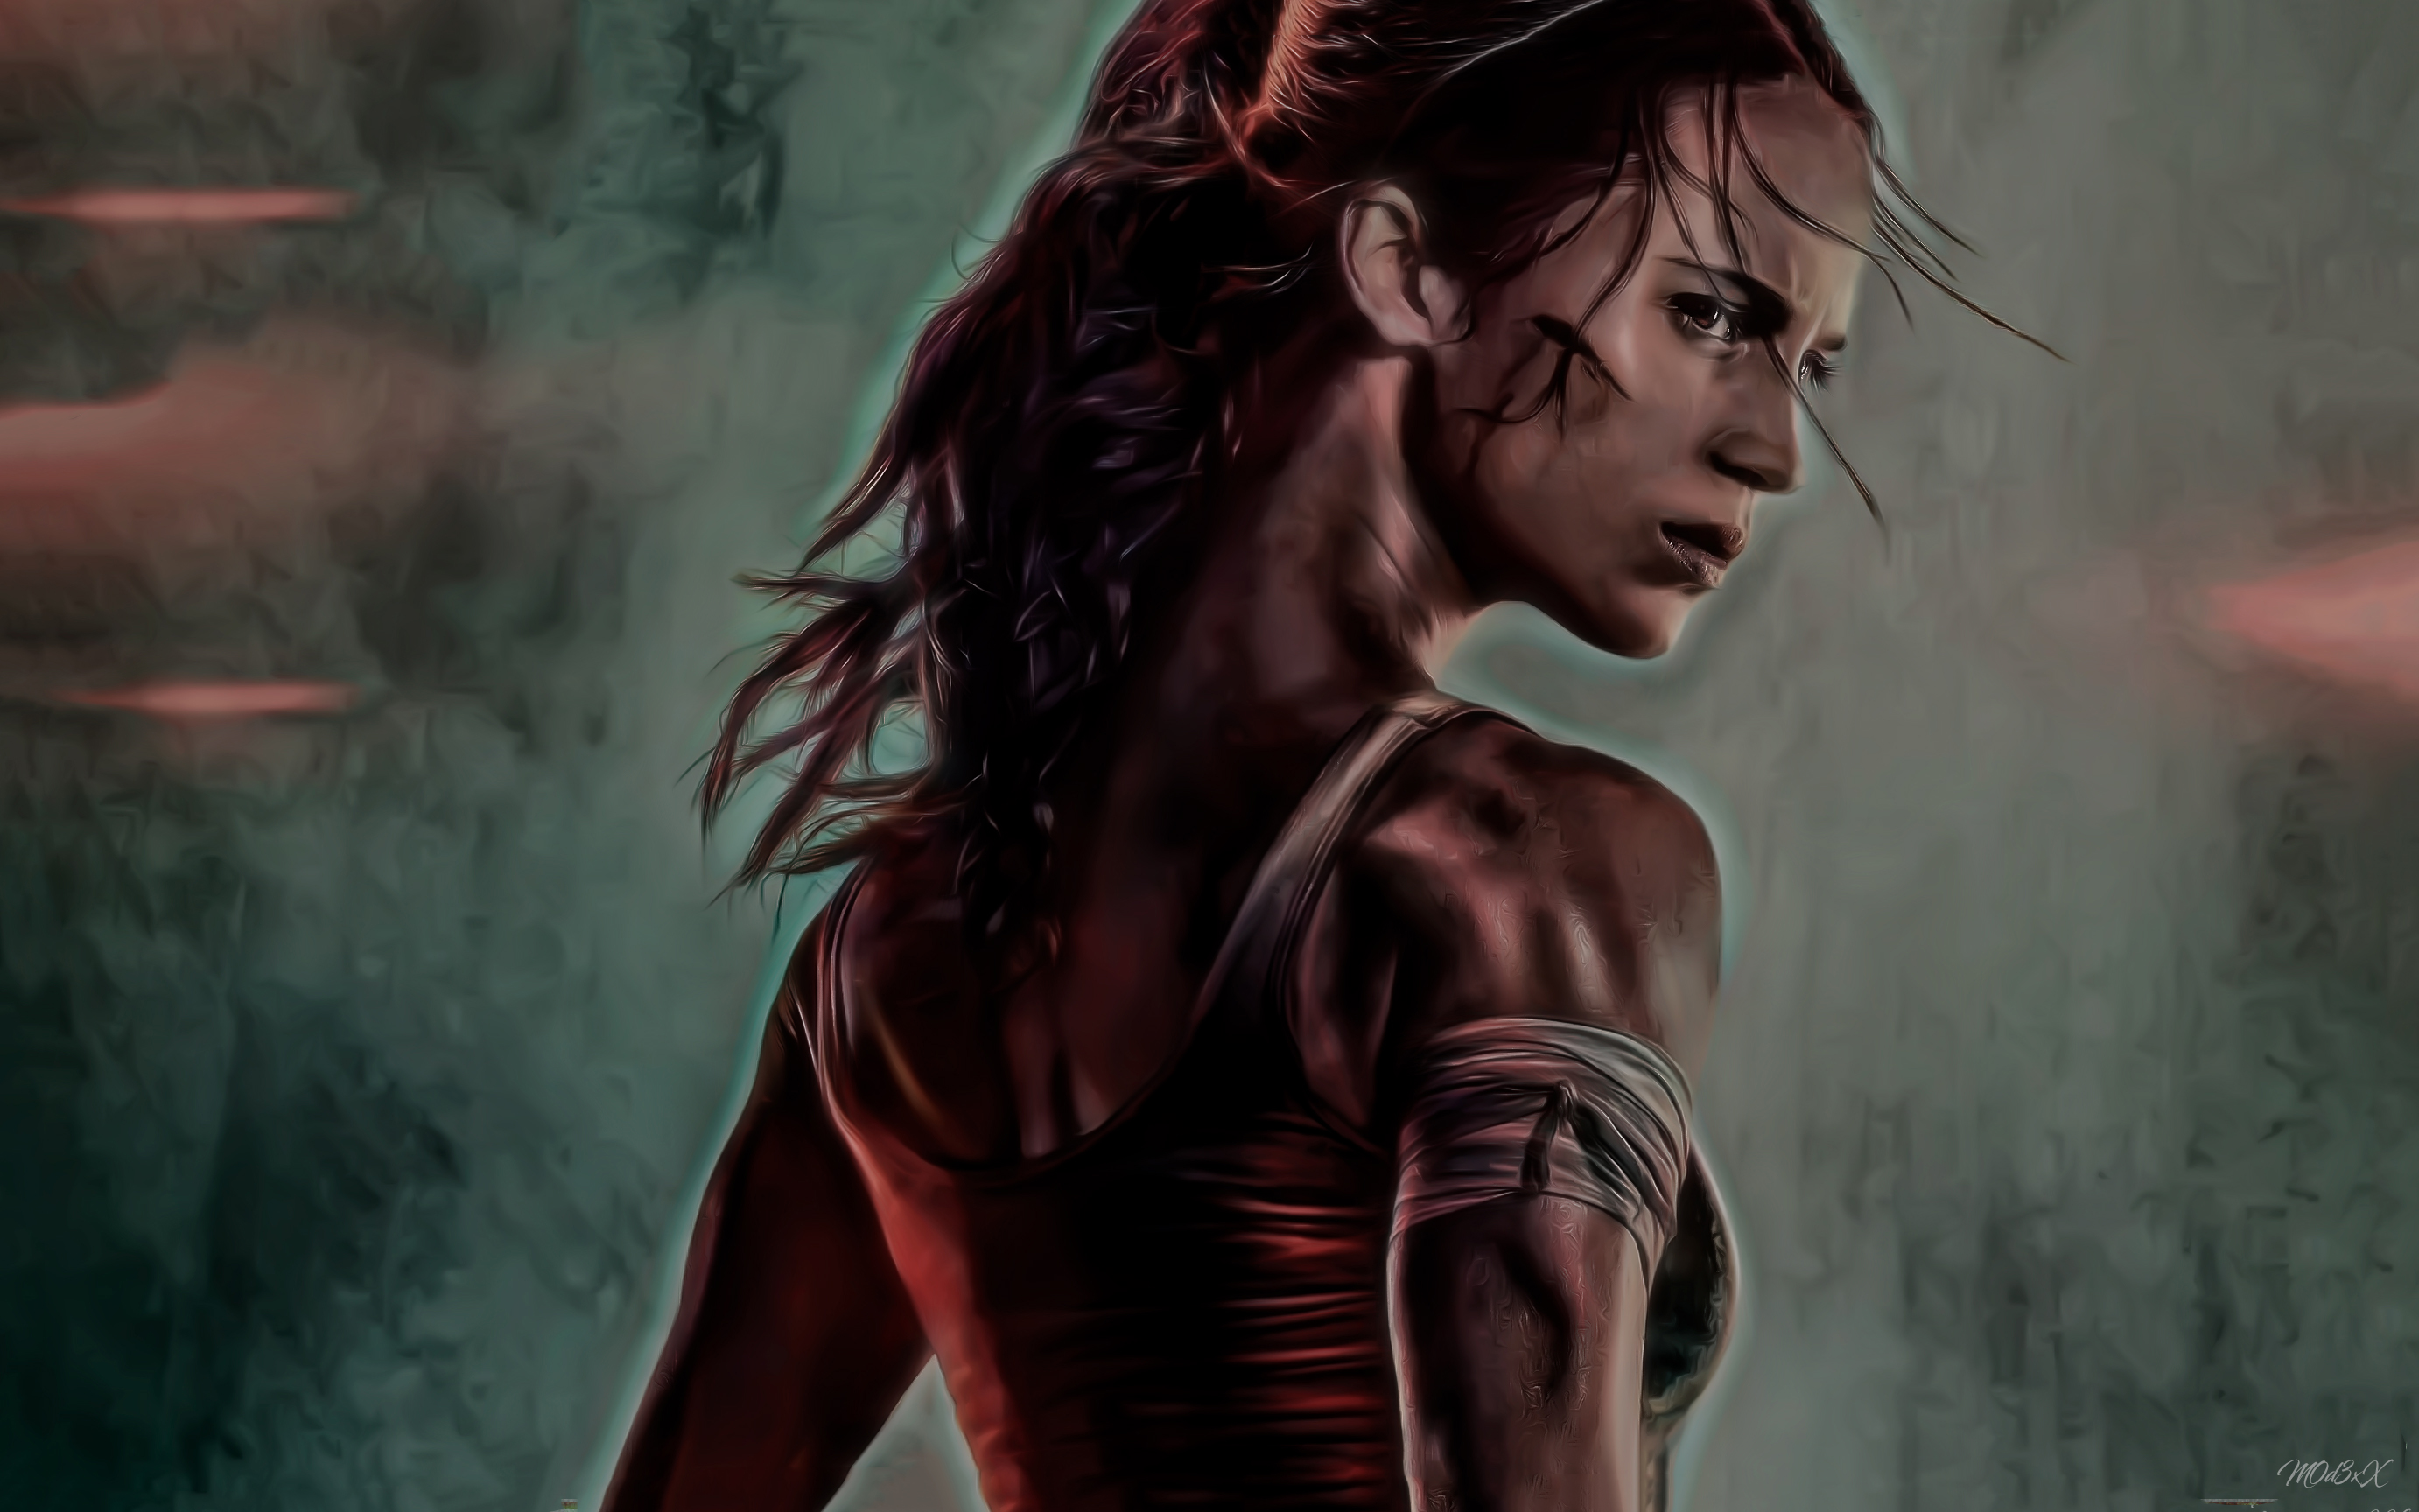 2932x2932 Pubg Android Game 4k Ipad Pro Retina Display Hd: 1920x1080 Tomb Raider 2018 Movie Alicia Vikander Artwork